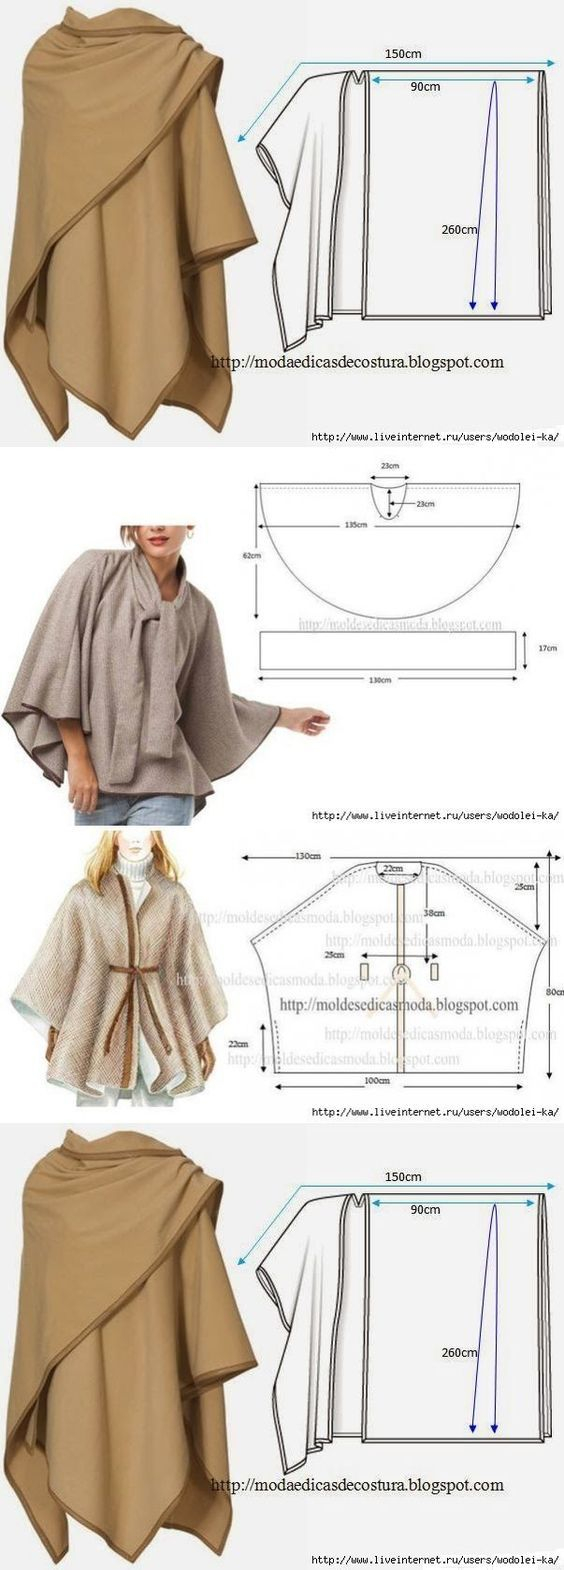 Free Patterns For Sewing Hooded Wrap Coat Sewing Ideas Sewing Sewing Patterns Knitting